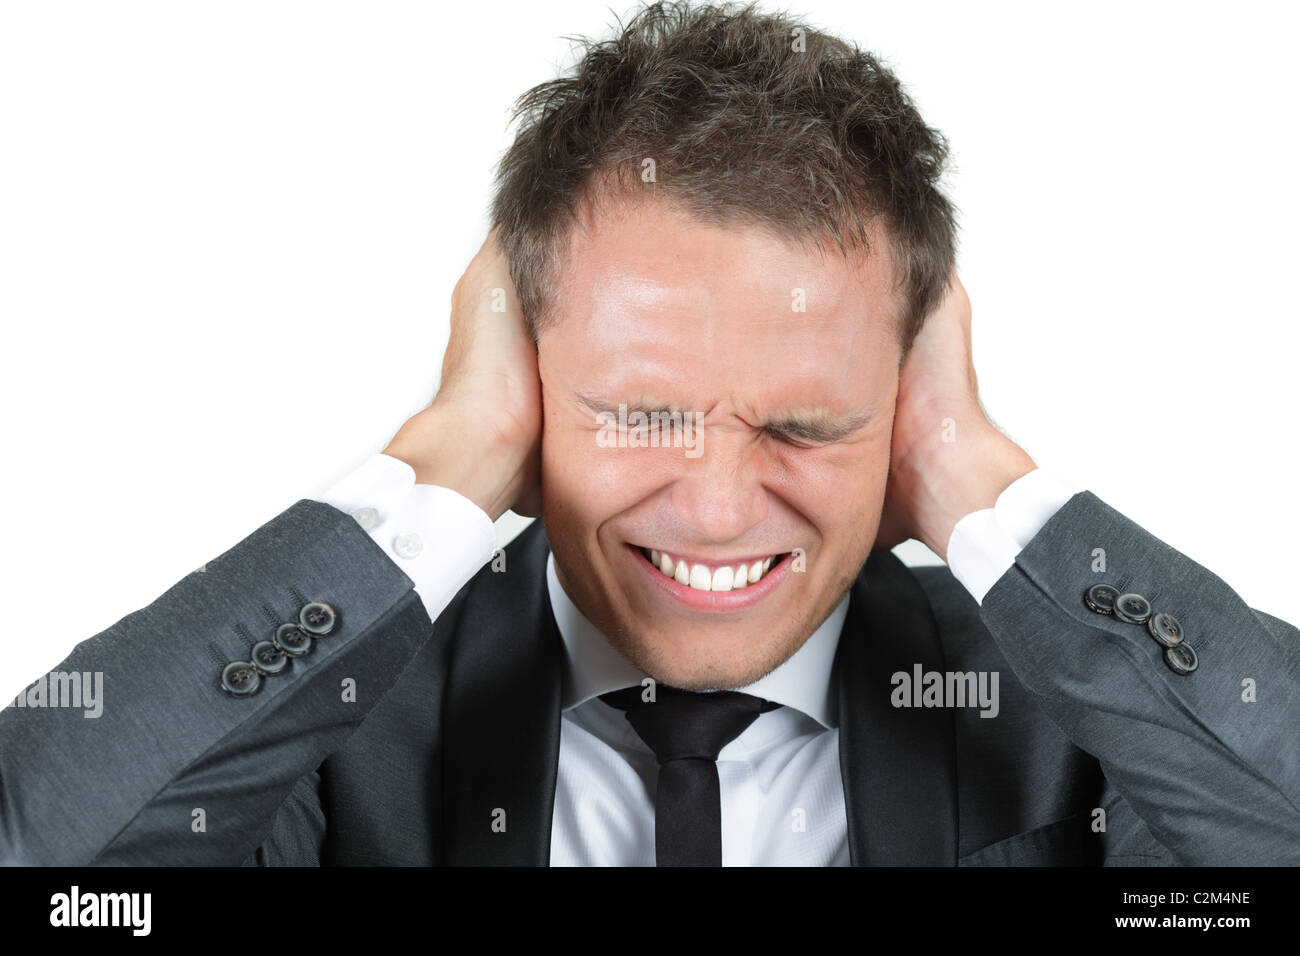 Young man, holding hands on his ears, protecting himself from noise - Stock Image